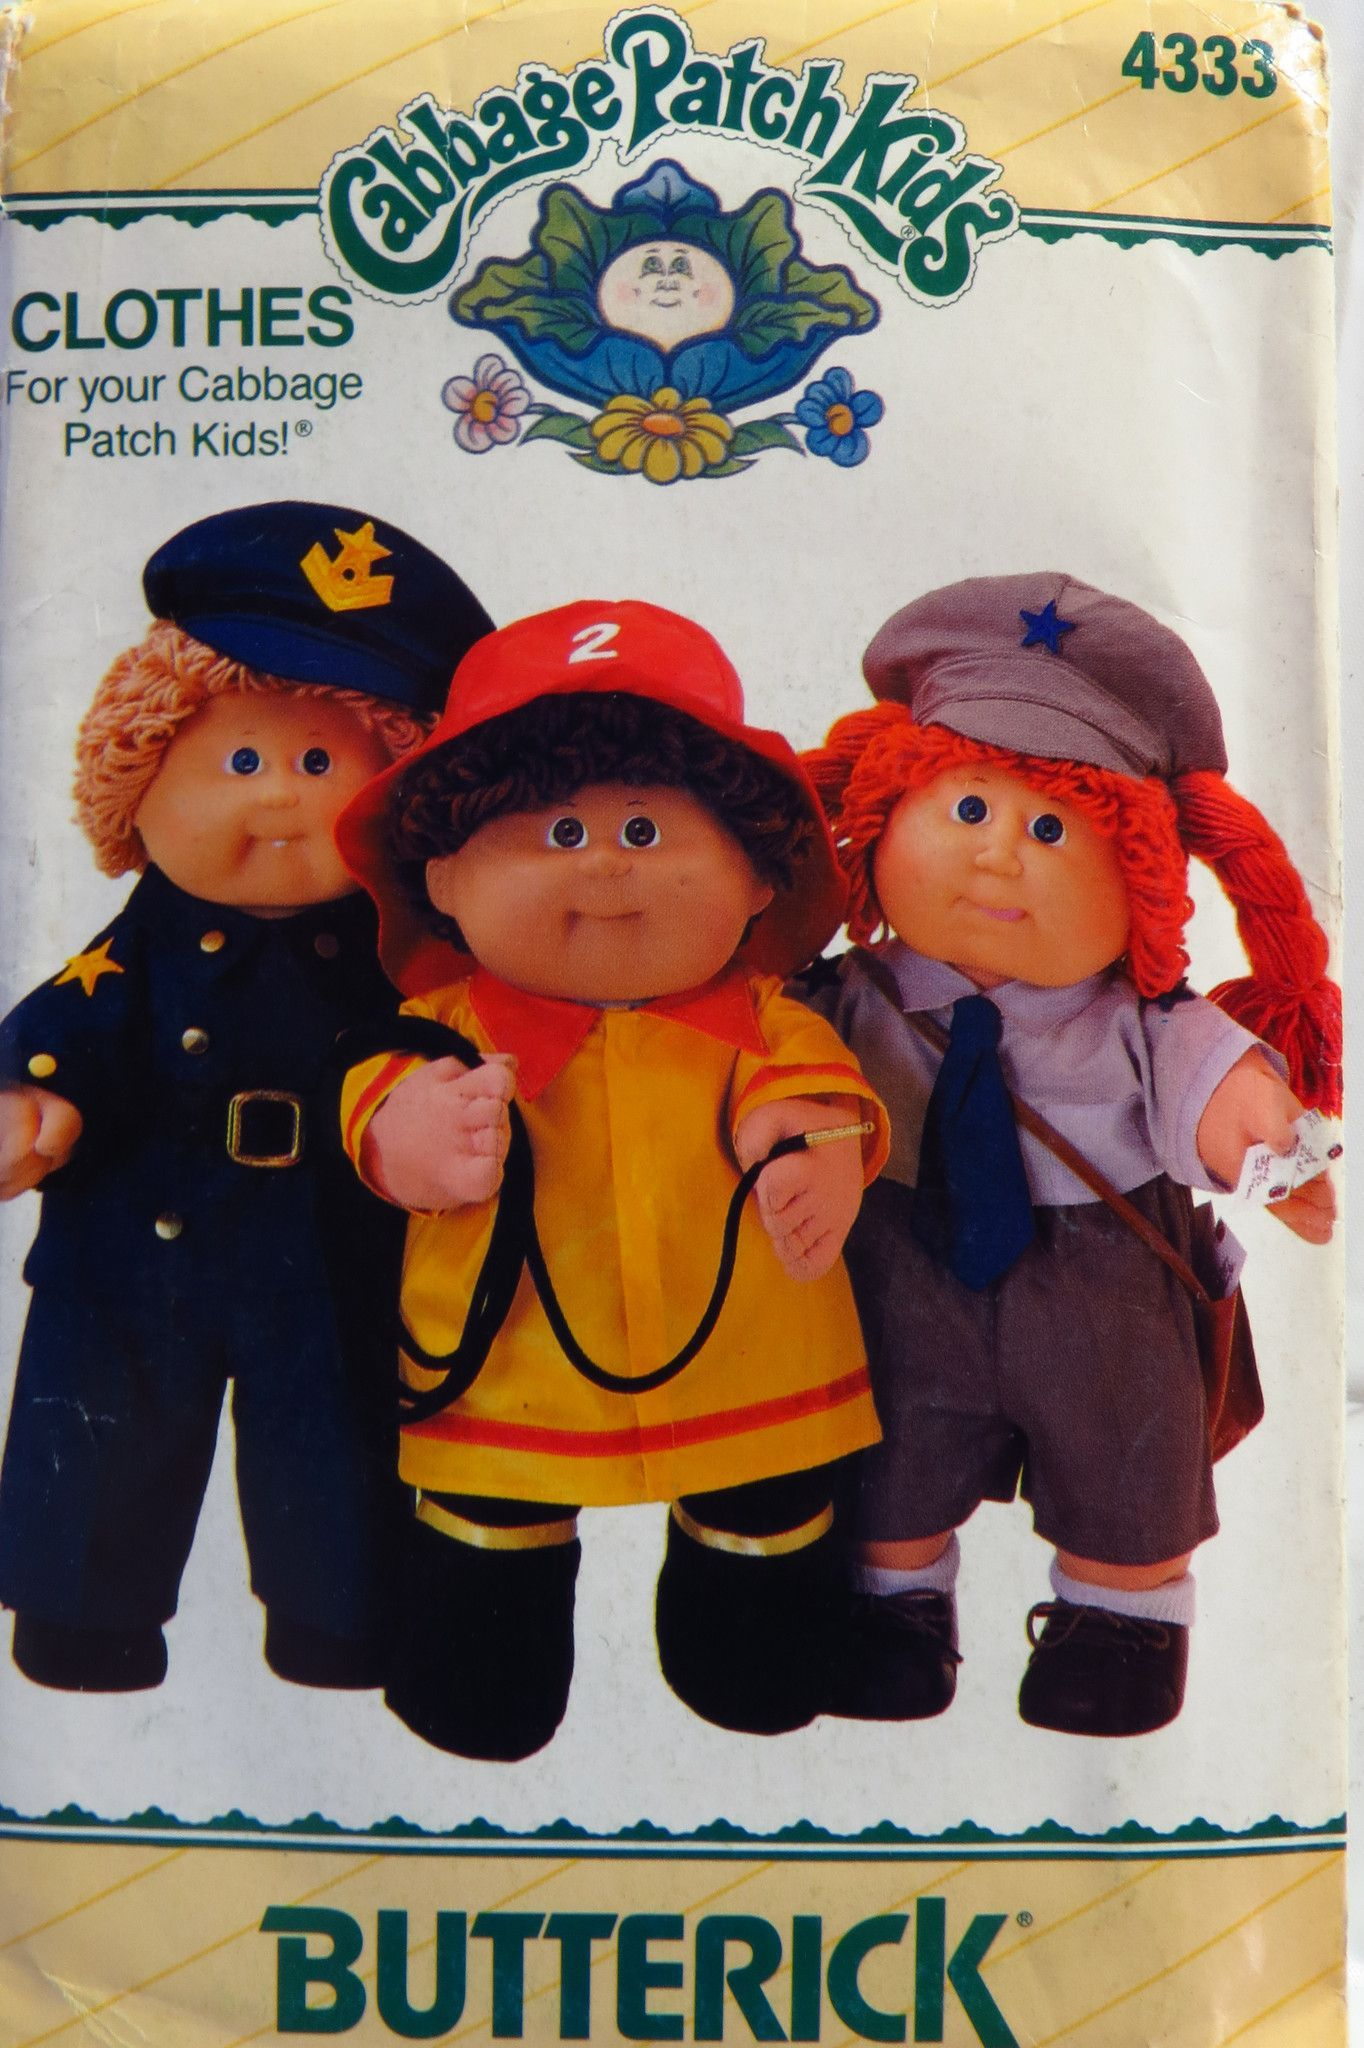 Butterick 4333 Cabbage Patch Kids Doll Clothes | Pinterest